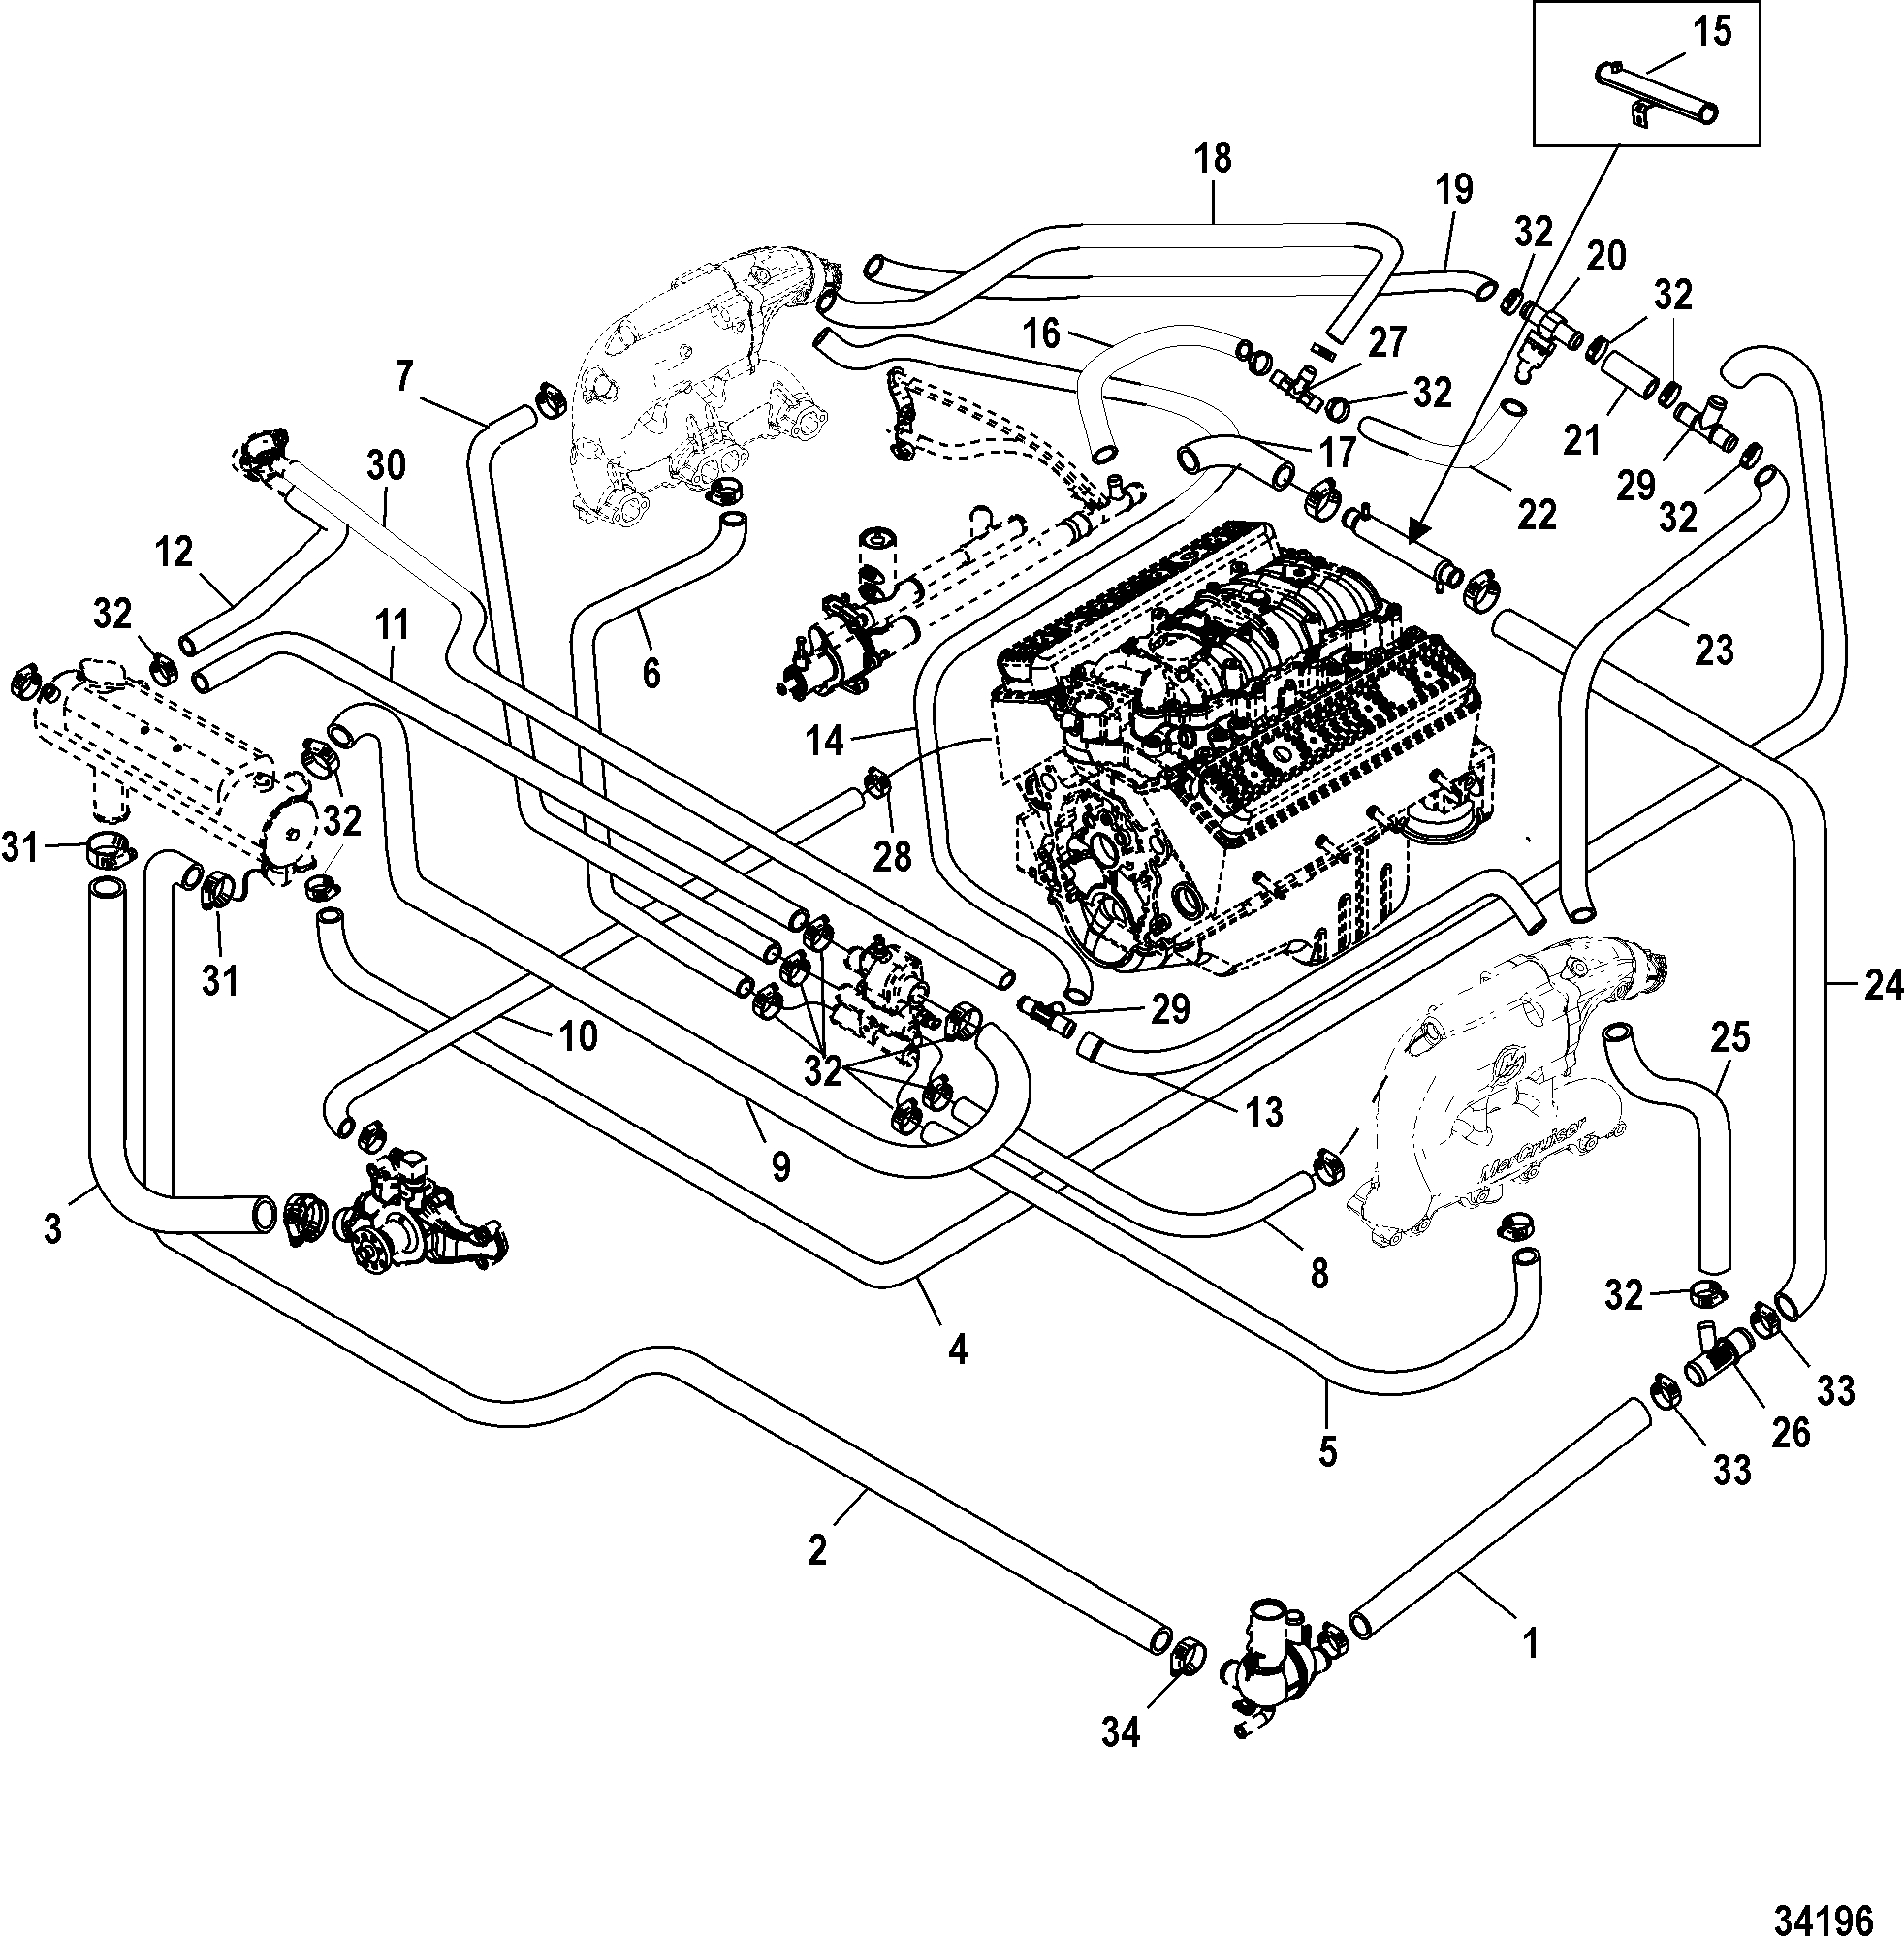 454 Mercruiser Engine Wiring Diagram | Wiring Library - Mercruiser 5.7 Wiring Diagram